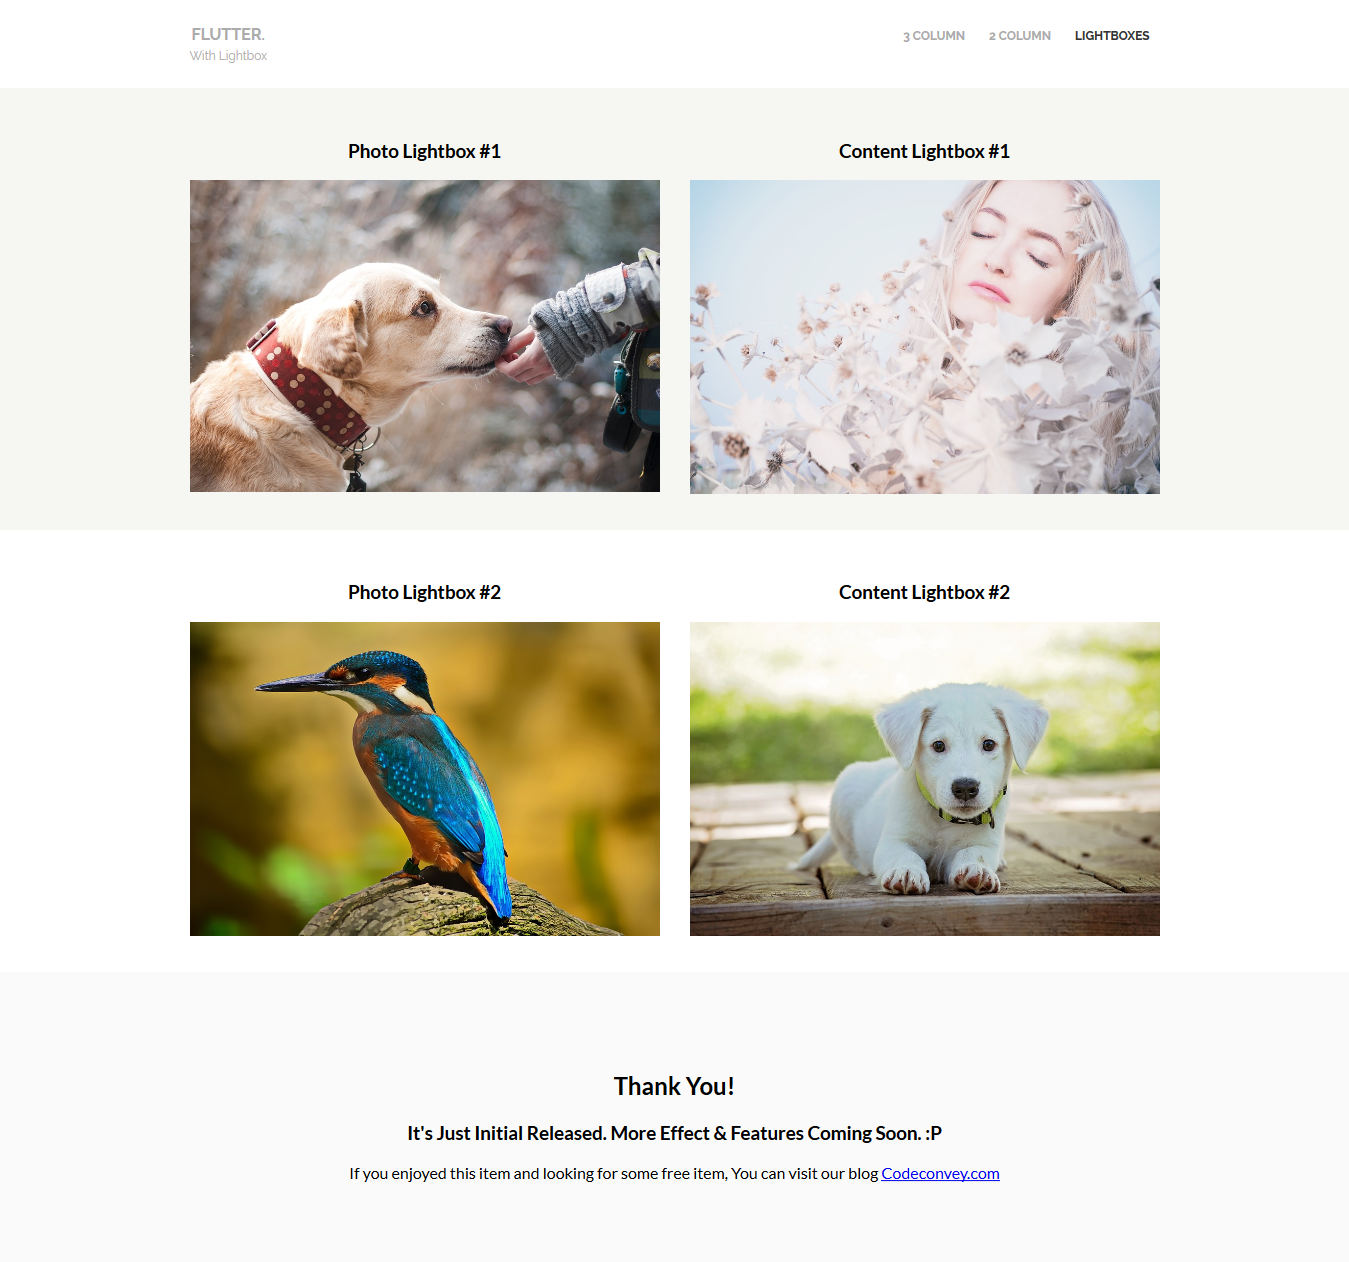 Flutter CSS Image Hover Effects Lightbox(1).png Flutter CSS Image Hover Effects Lightbox(2).png ...